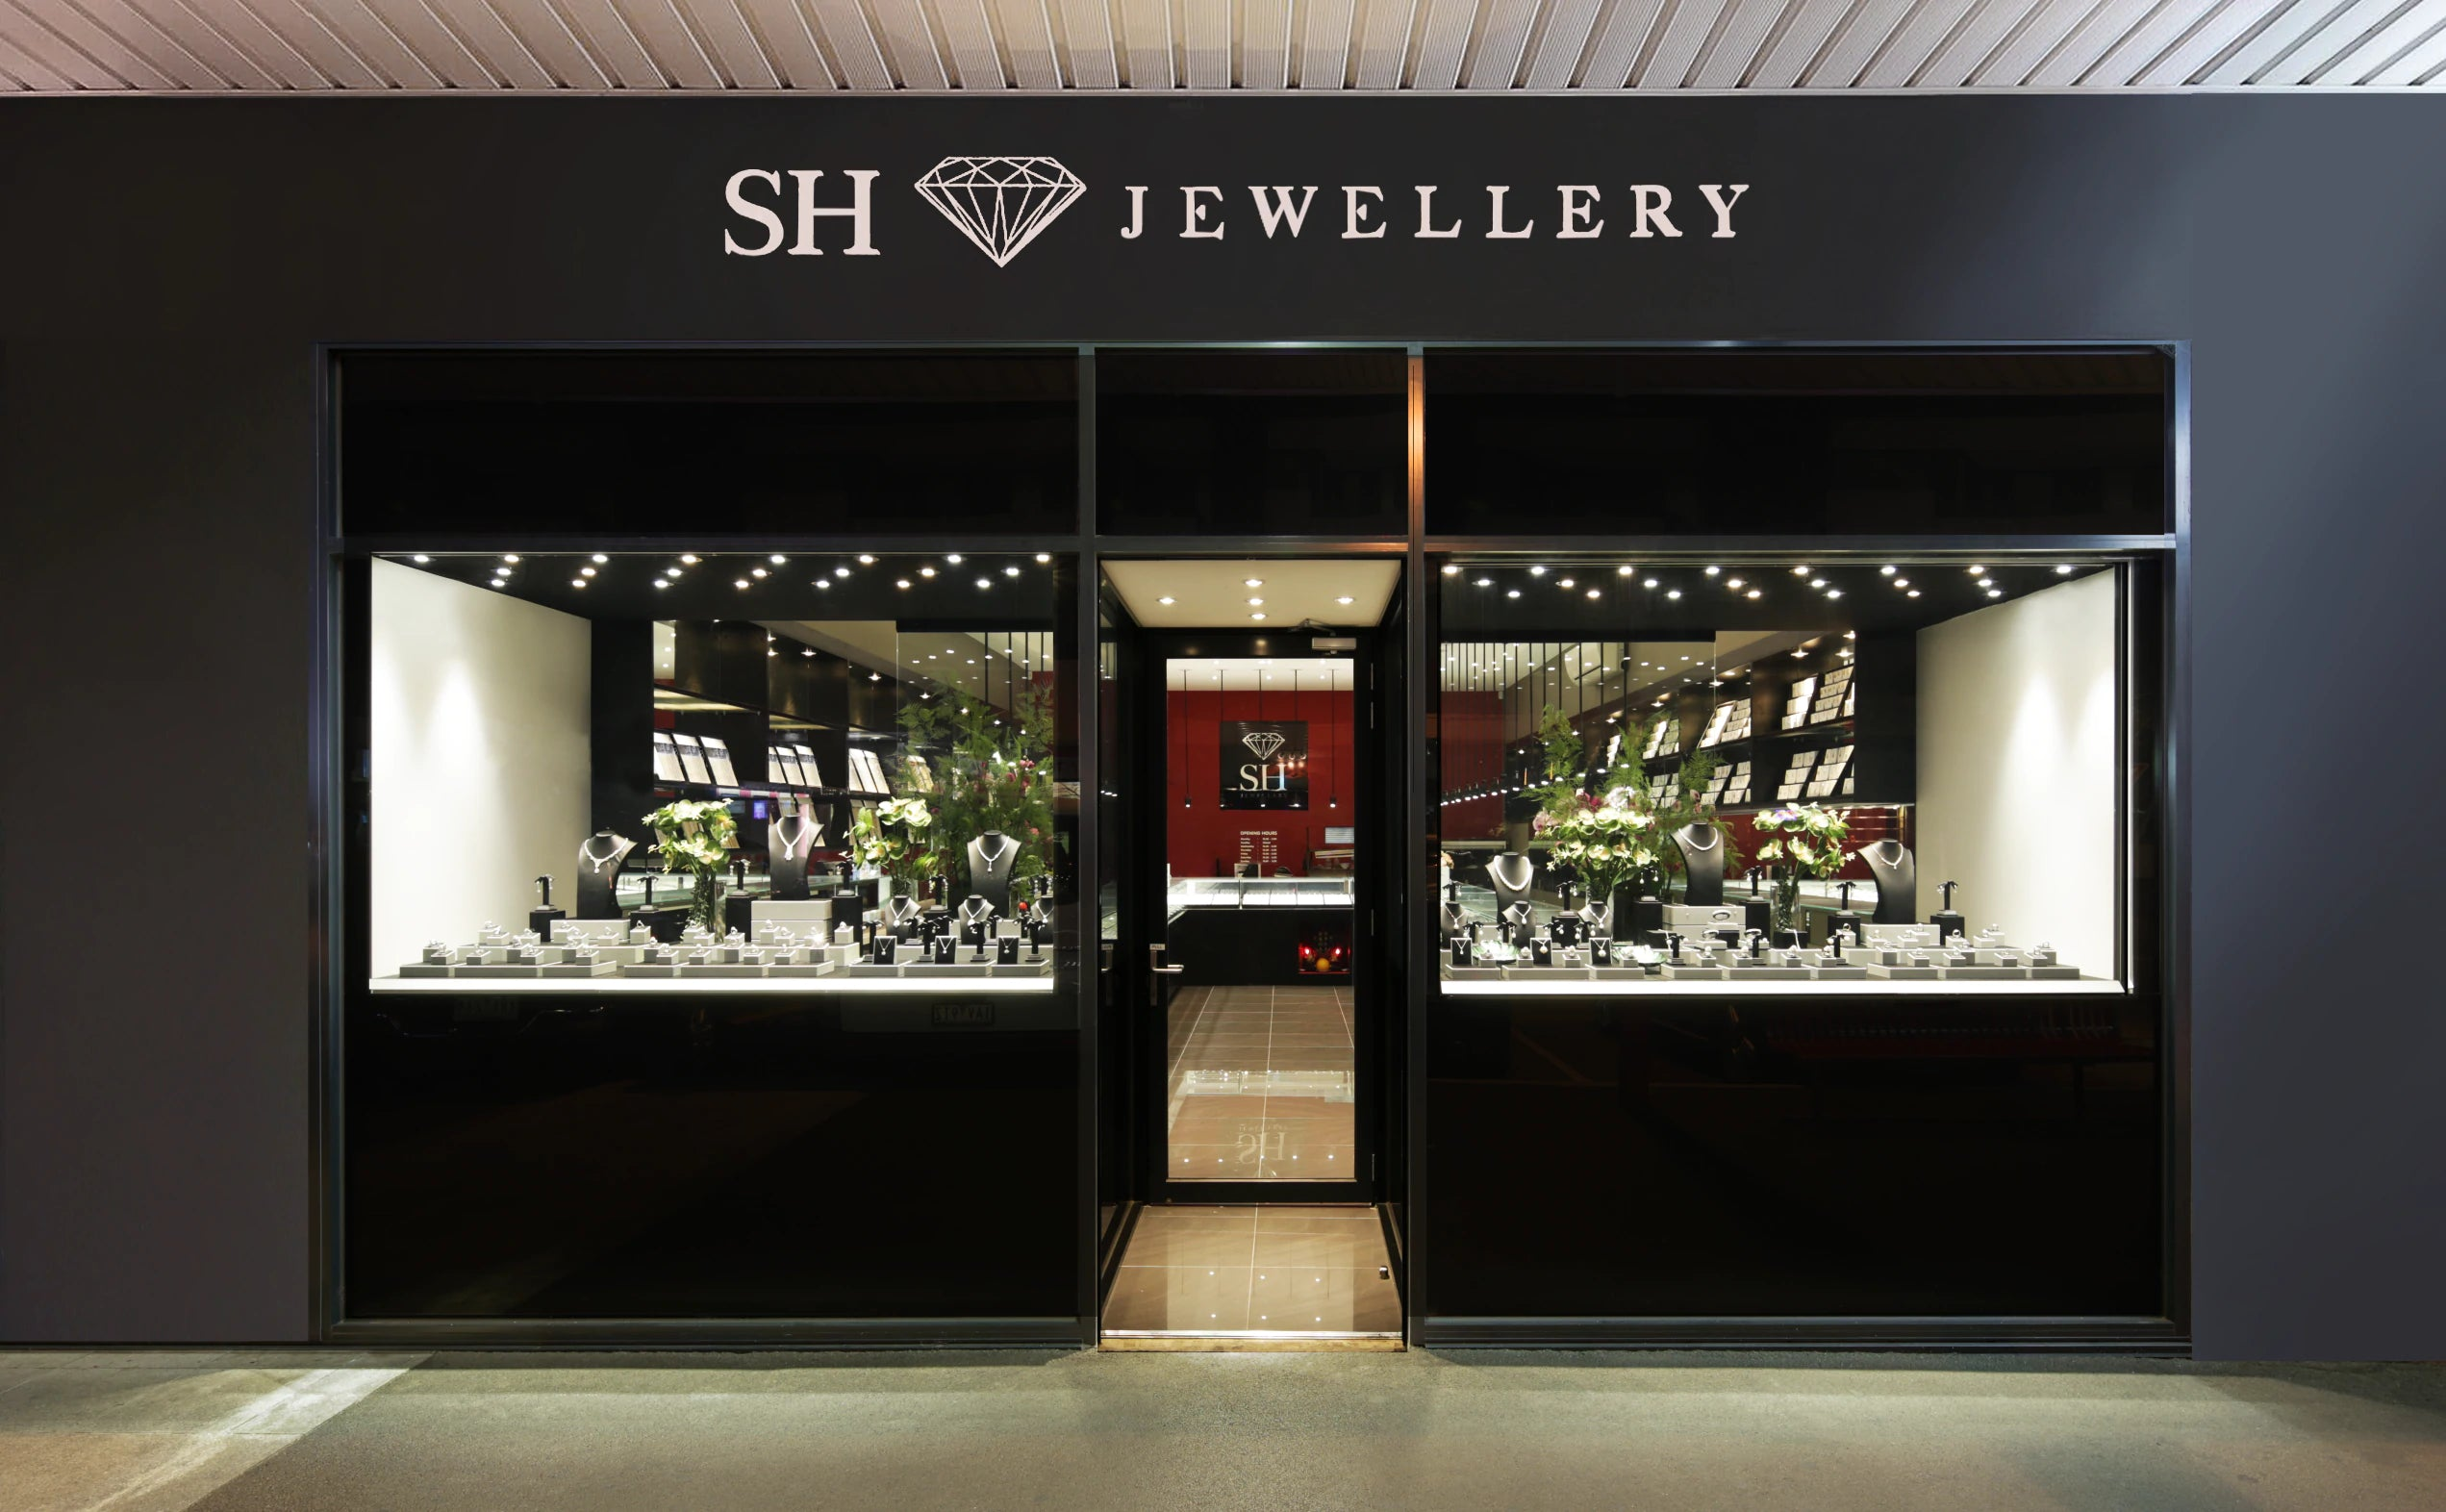 sh-jewellery-store-exterior-small.png